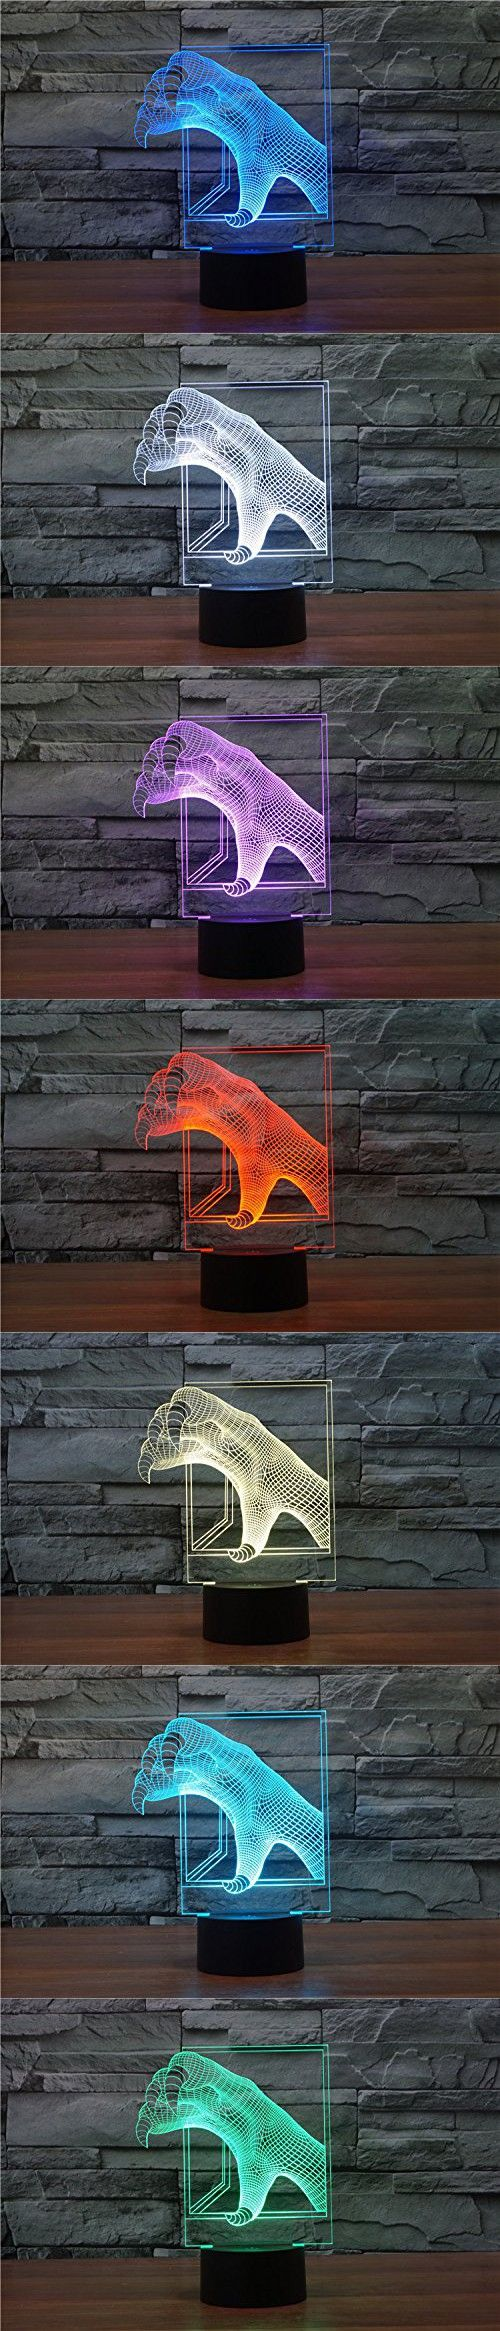 3D Glow LED Night Light 7 Vibrant Colors Optical Illusion Lamp Touch Sensor Perfect for Home Party Festival Decor Great Gift Idea (Dragon's Claw)